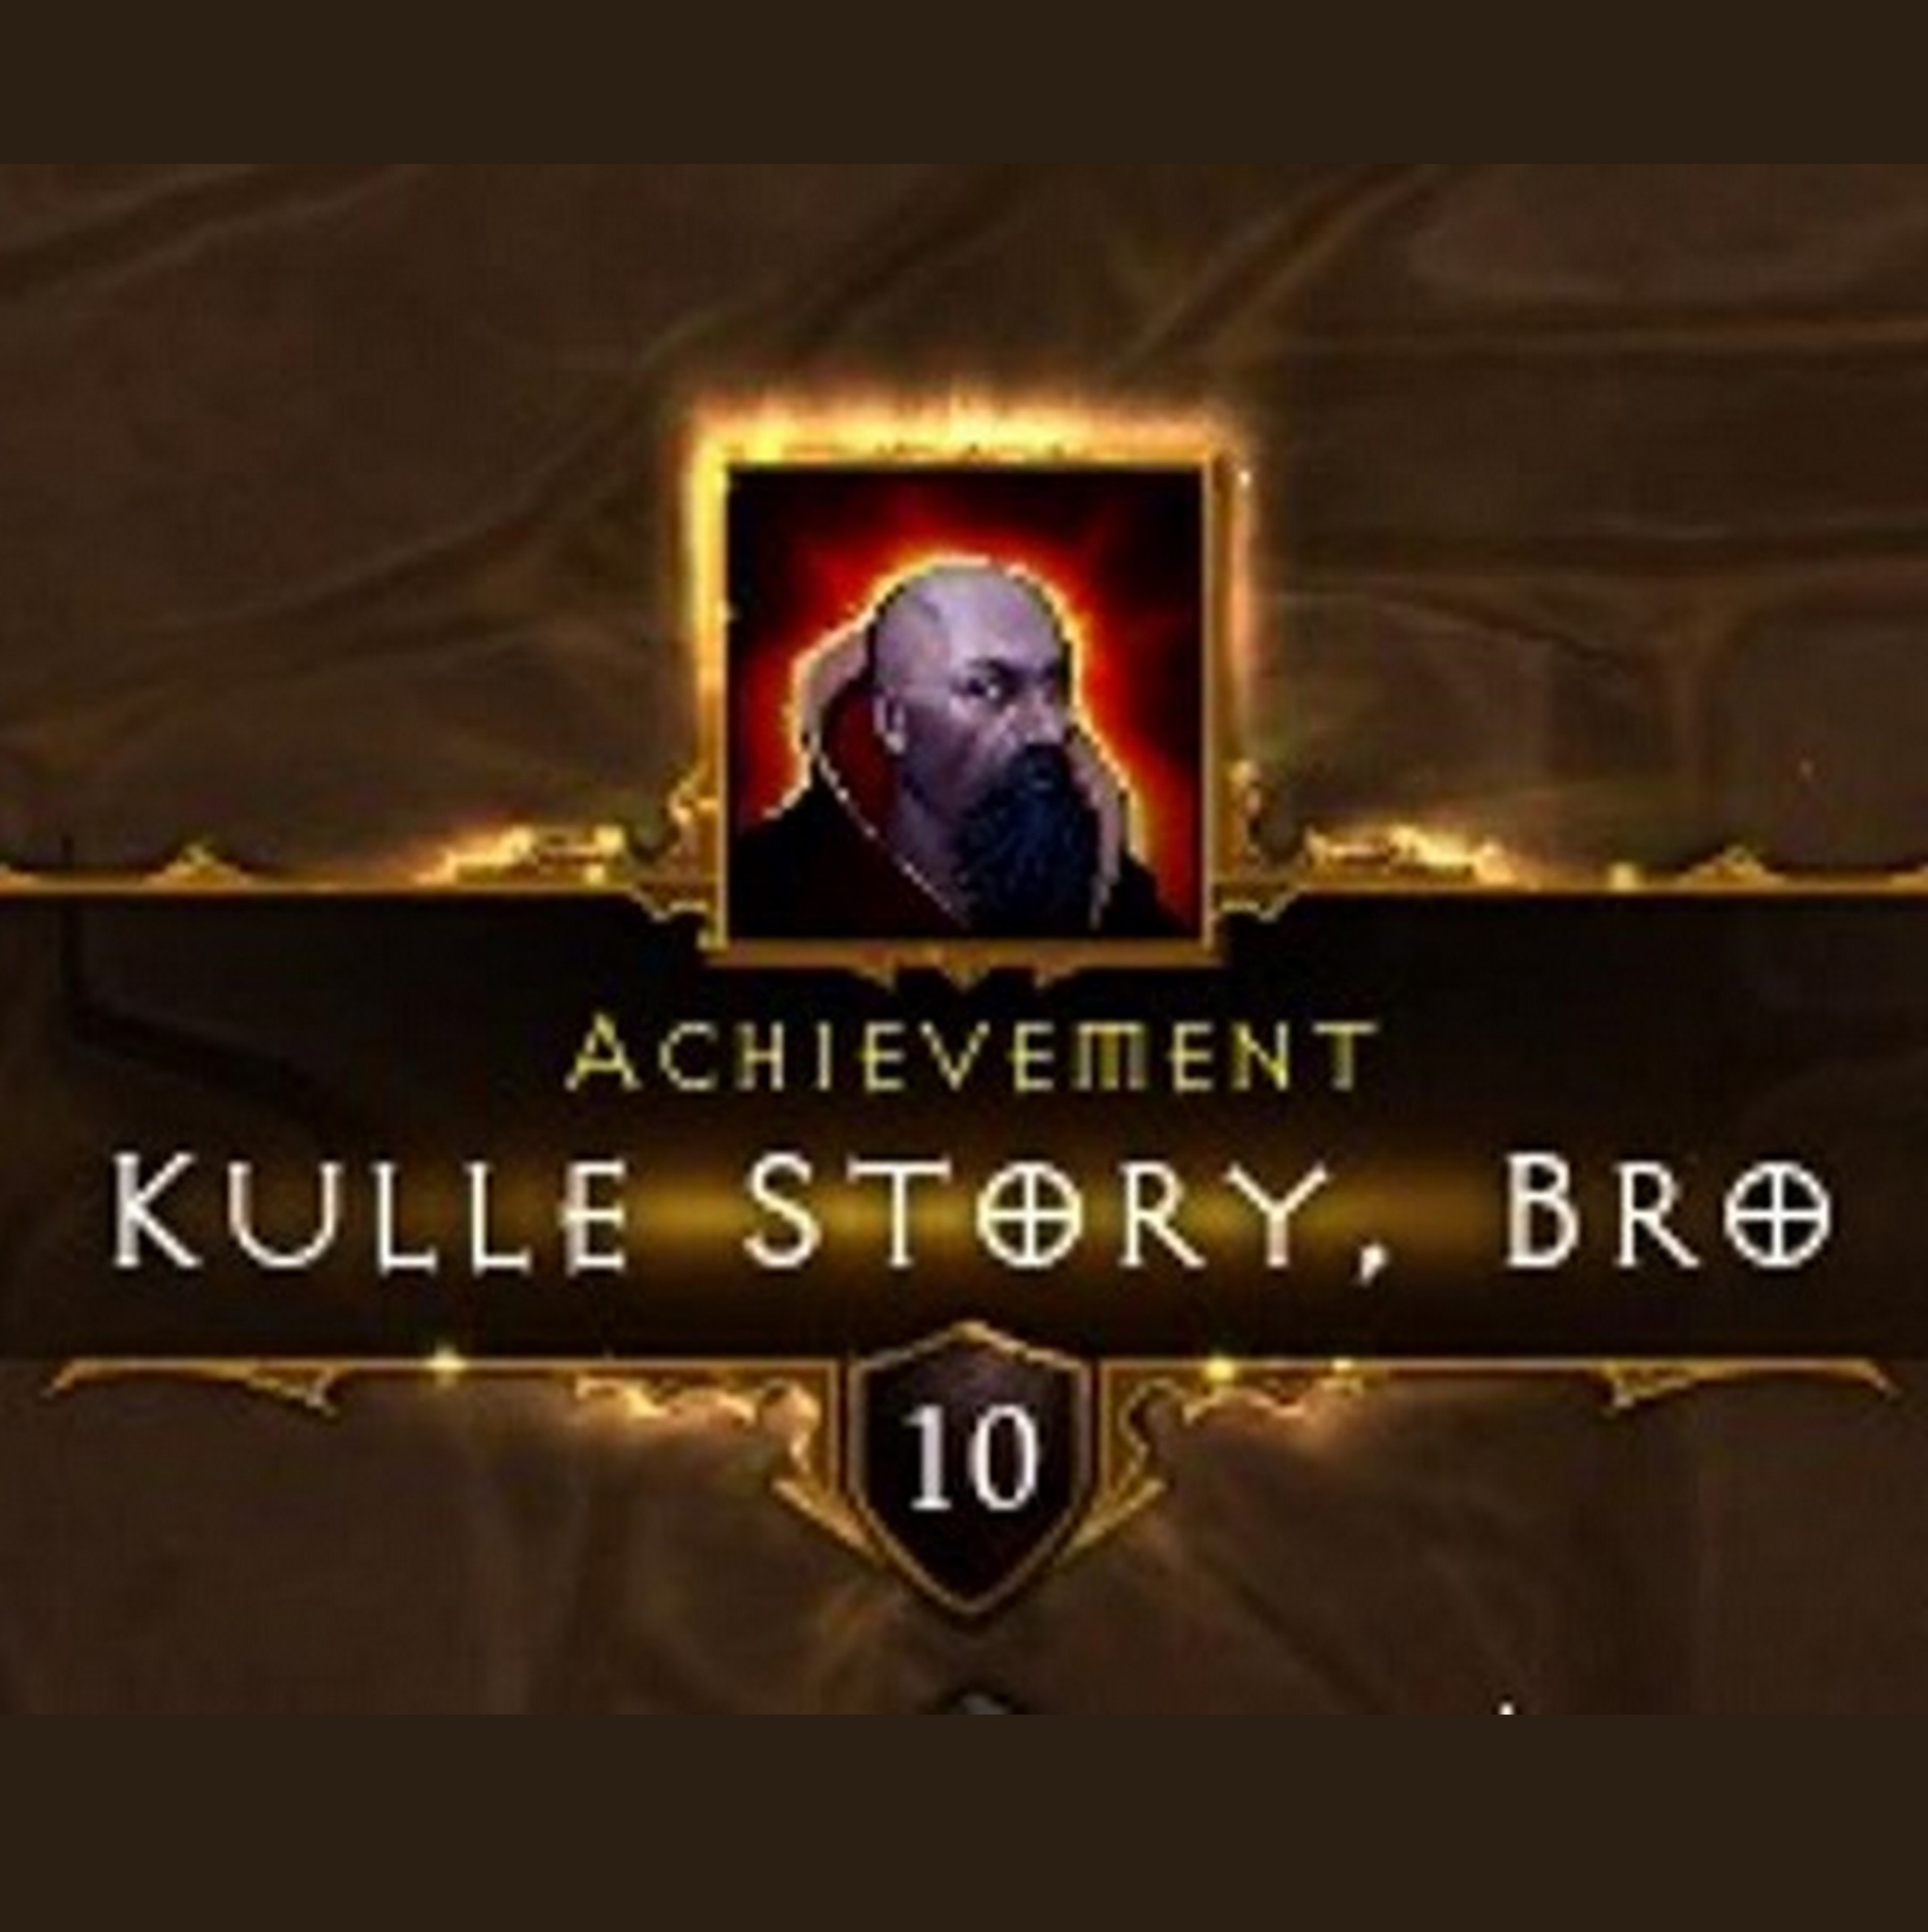 Kulle Story Bro - A Diablo 3 Podcast Episode 20